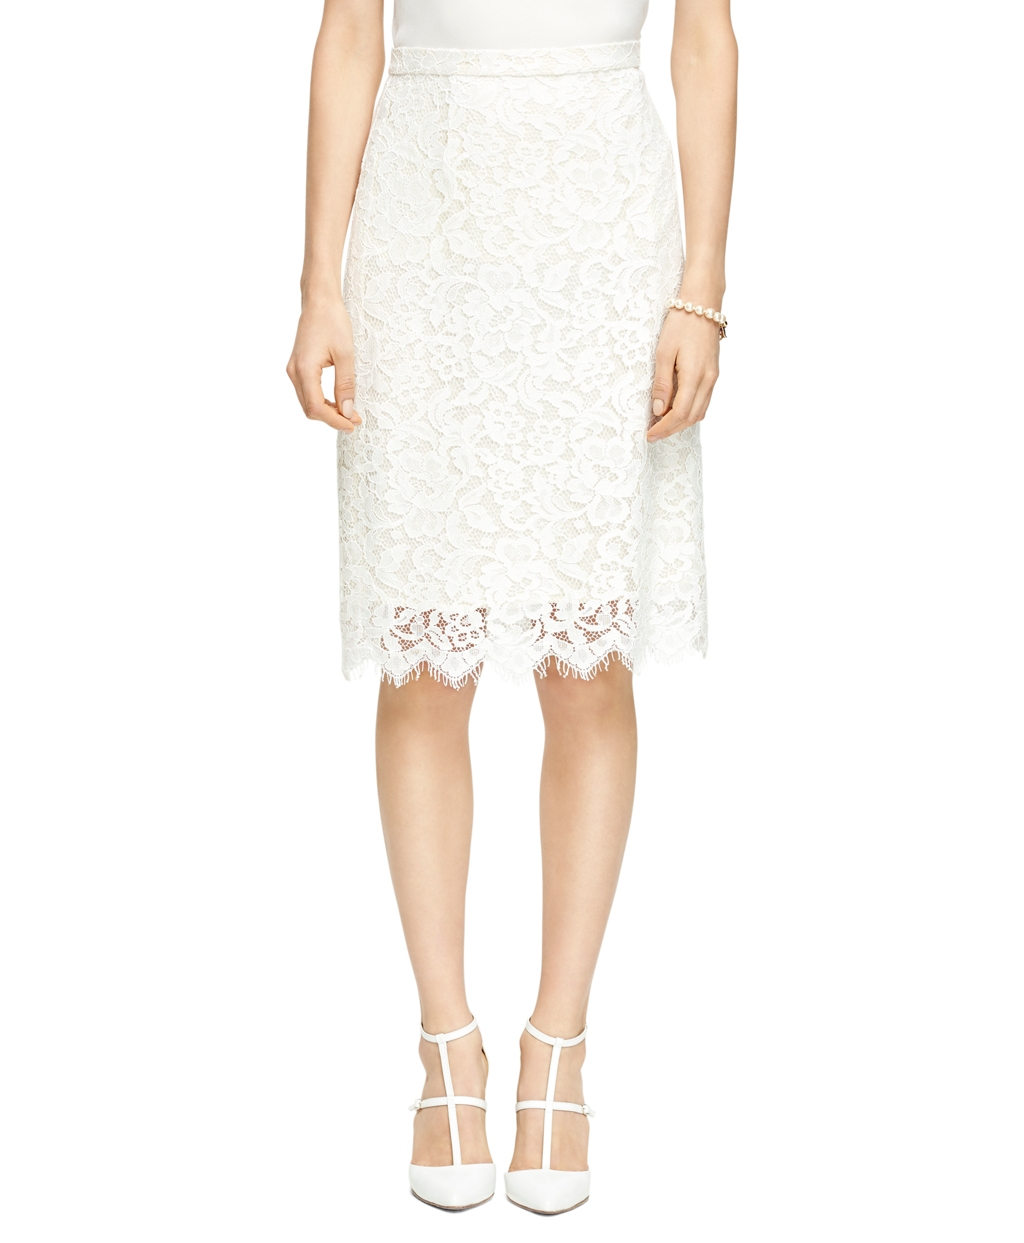 Best prices on White lace skirts in Women's Skirts online. Visit Bizrate to find the best deals on top brands. Read reviews on Clothing & Accessories merchants and buy with confidence.